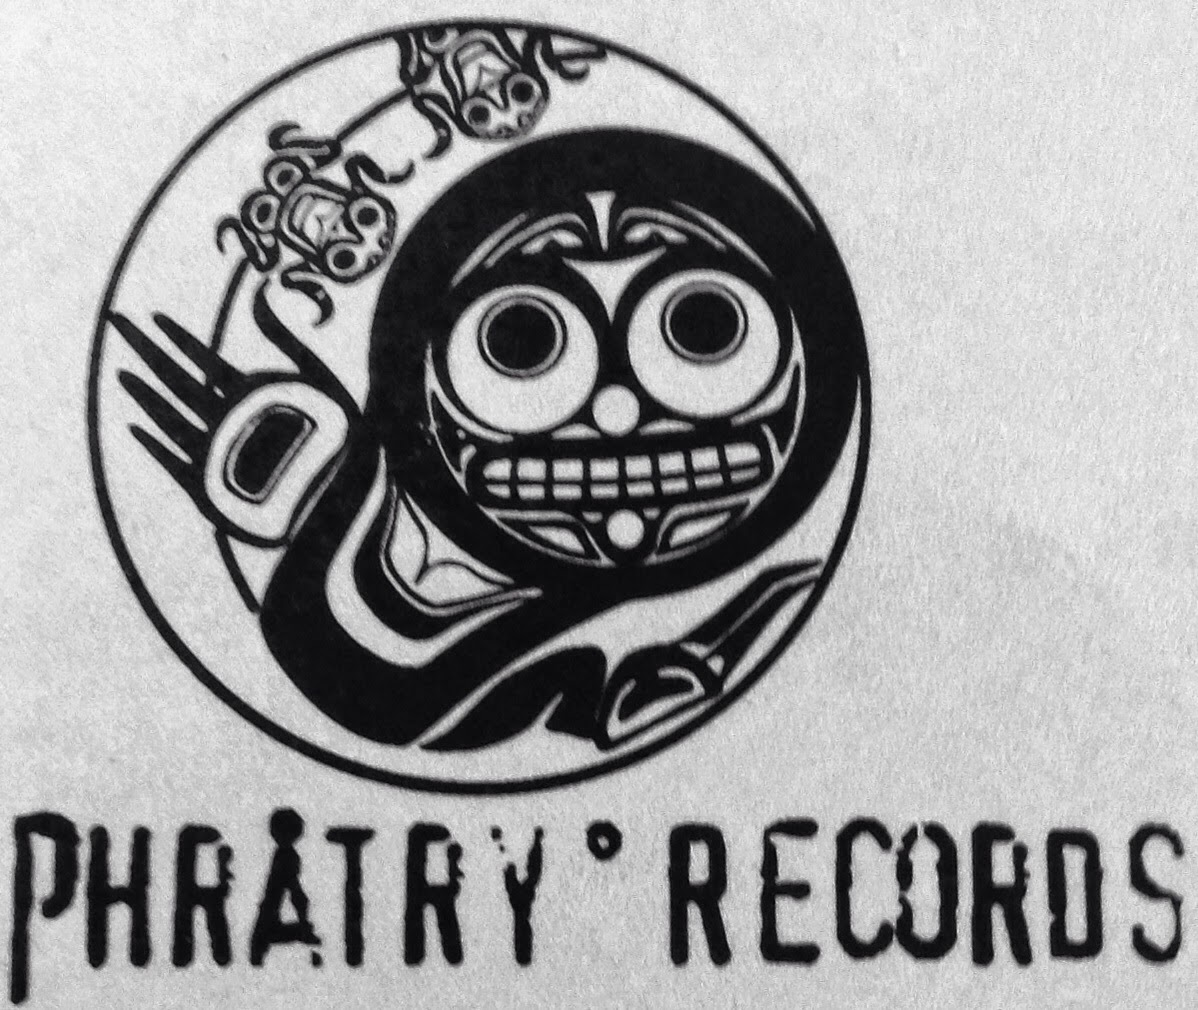 Buy Records from this Local label.